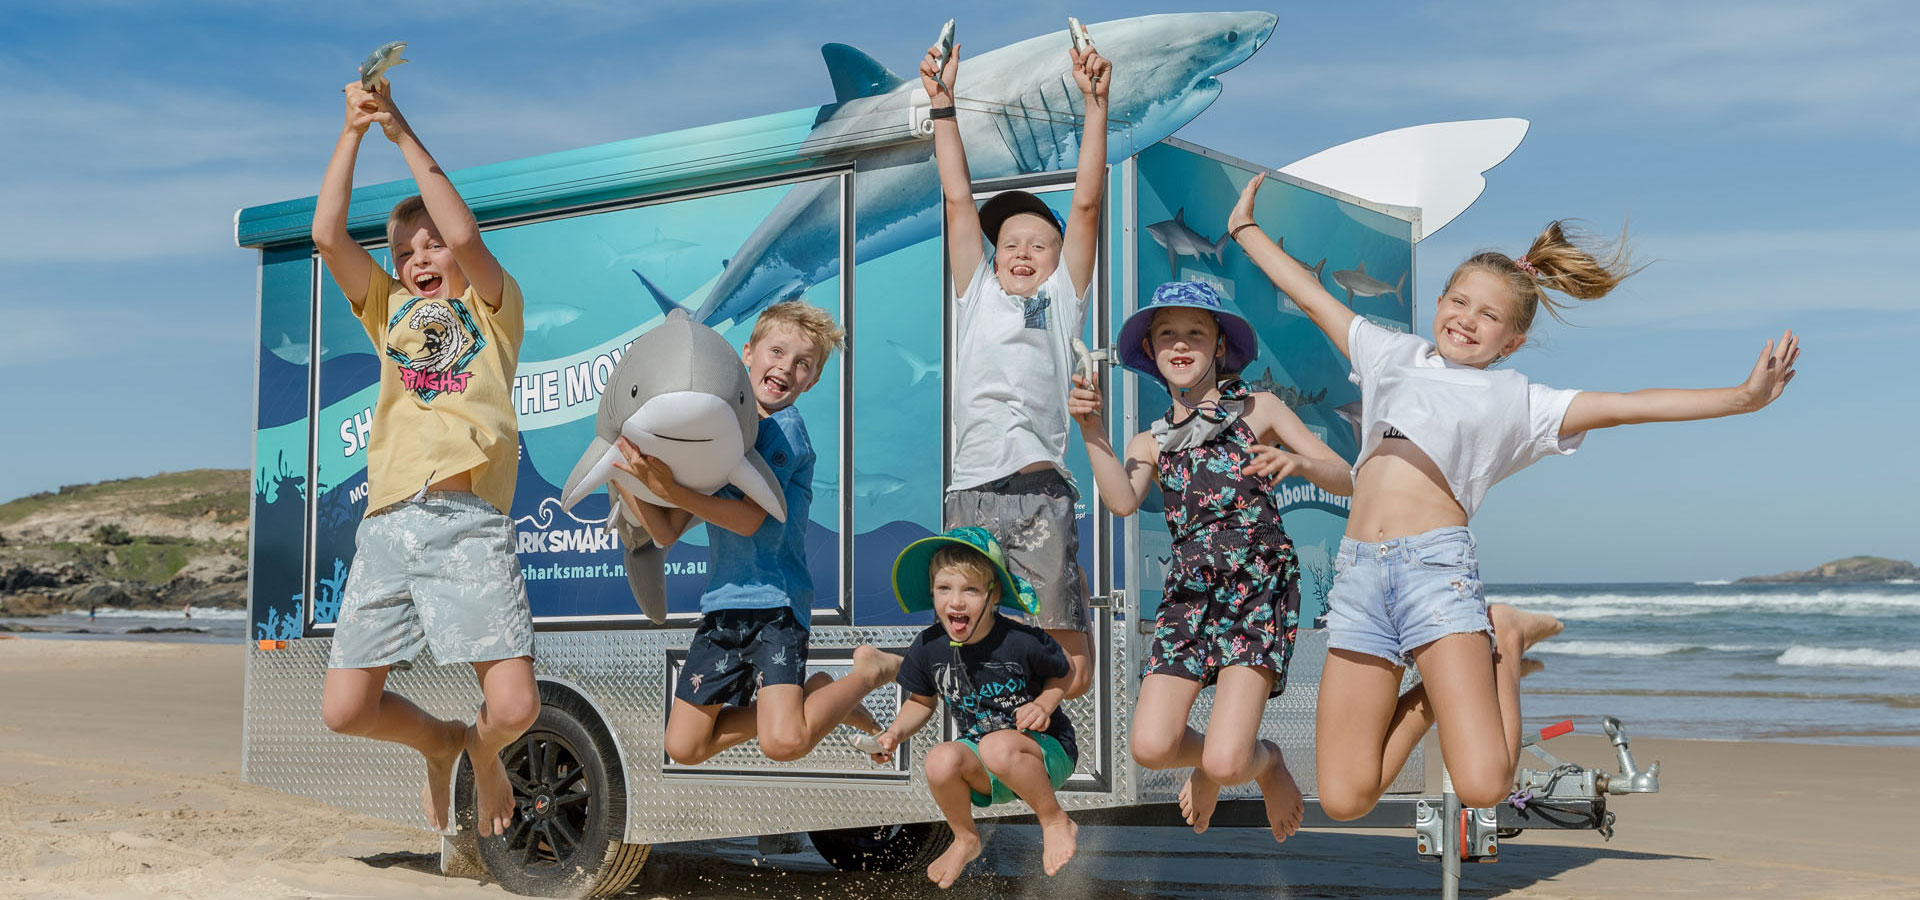 Kids are jumping with joy in front of the shark trailer